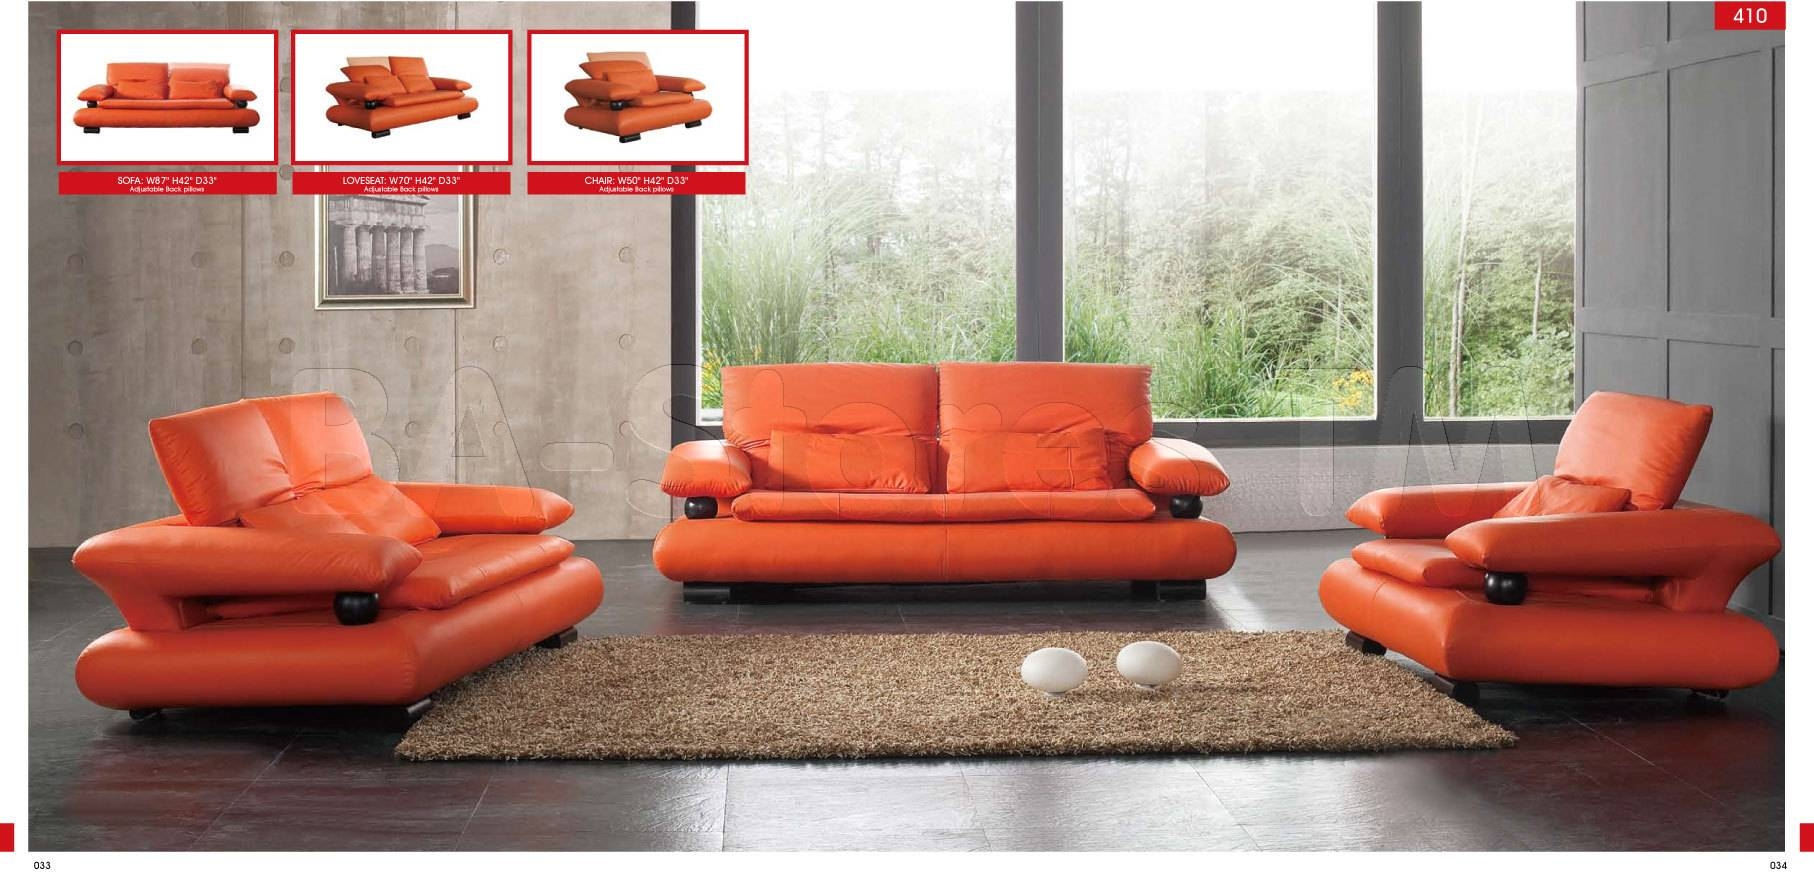 410 Sofa - $1,600.00 : Furniture Store Shipped Free In Usa, Nyc with regard to Orange Sofa Chairs (Image 3 of 15)